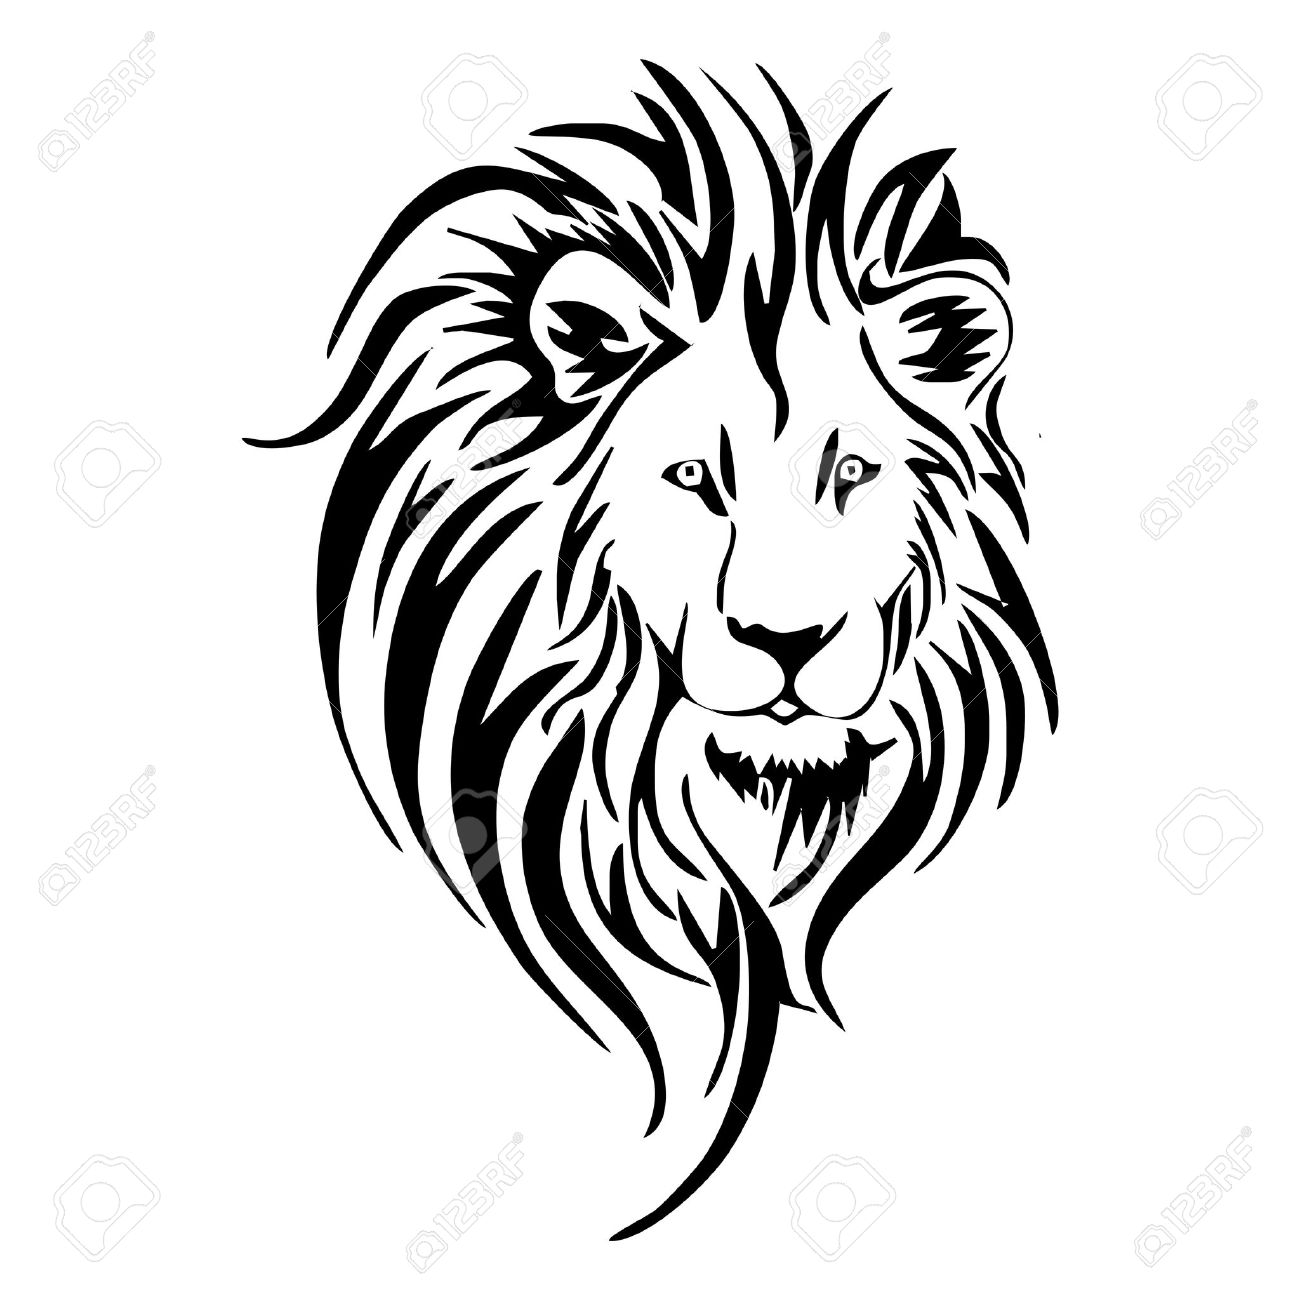 1300x1300 Aslan Clipart Black And White Outline